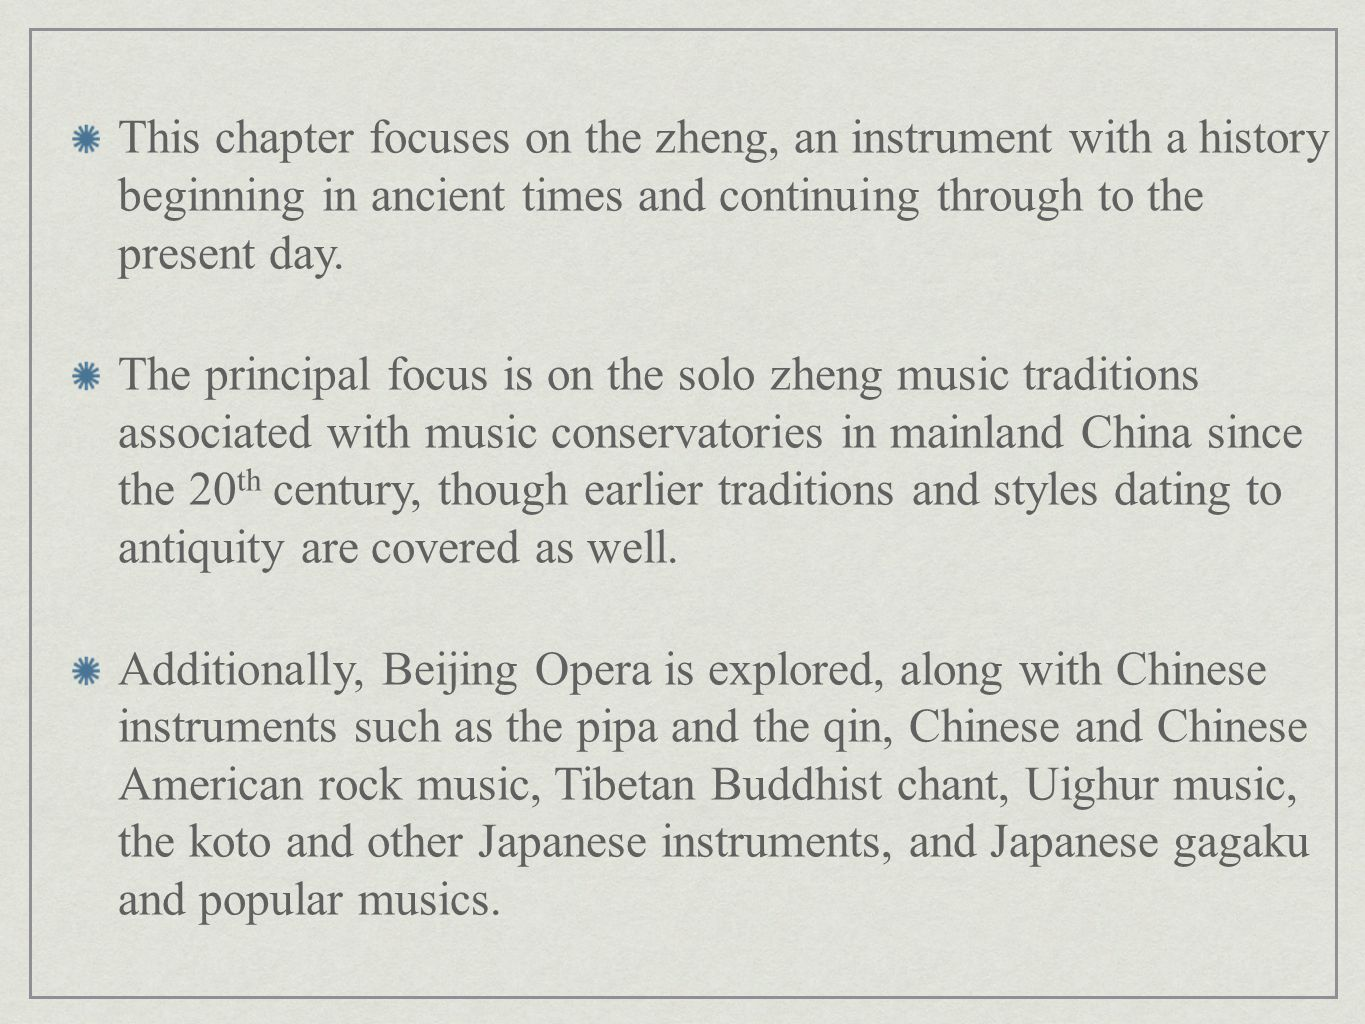 This chapter focuses on the zheng, an instrument with a history beginning in ancient times and continuing through to the present day.